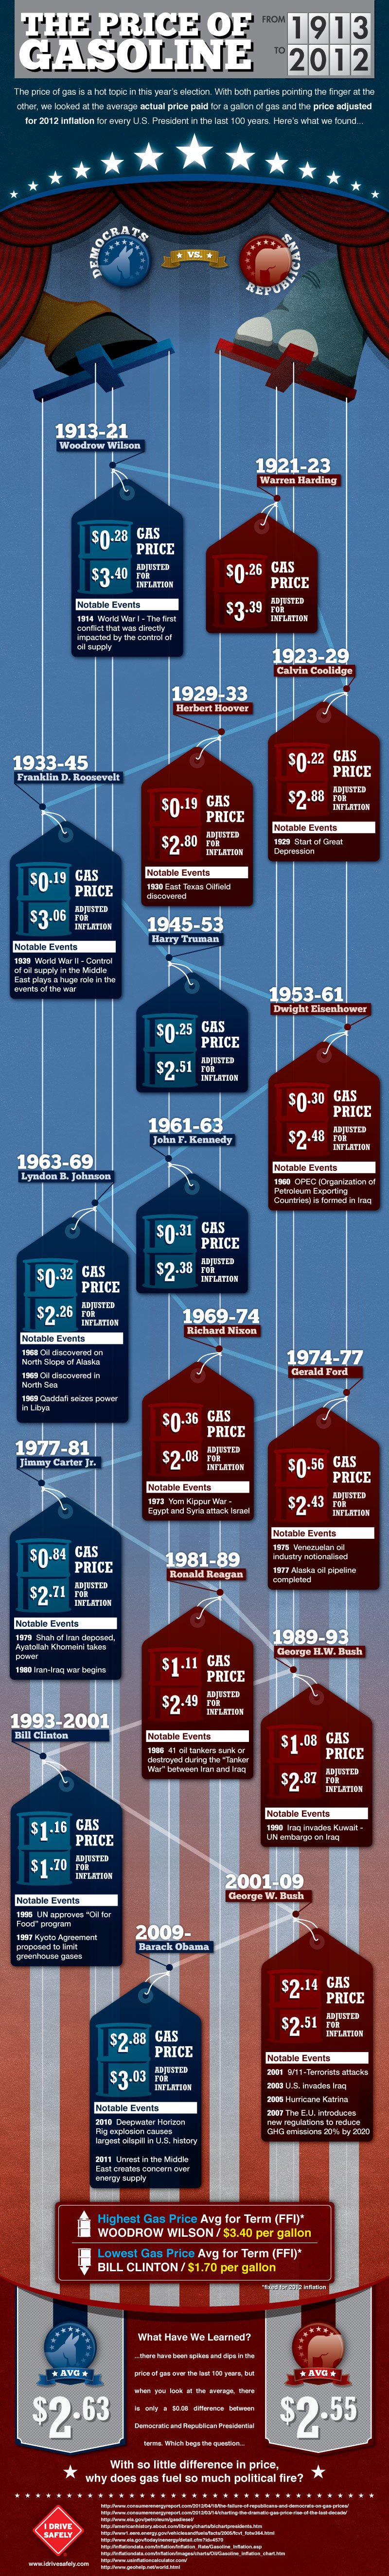 The Price of Gasoline Infographic